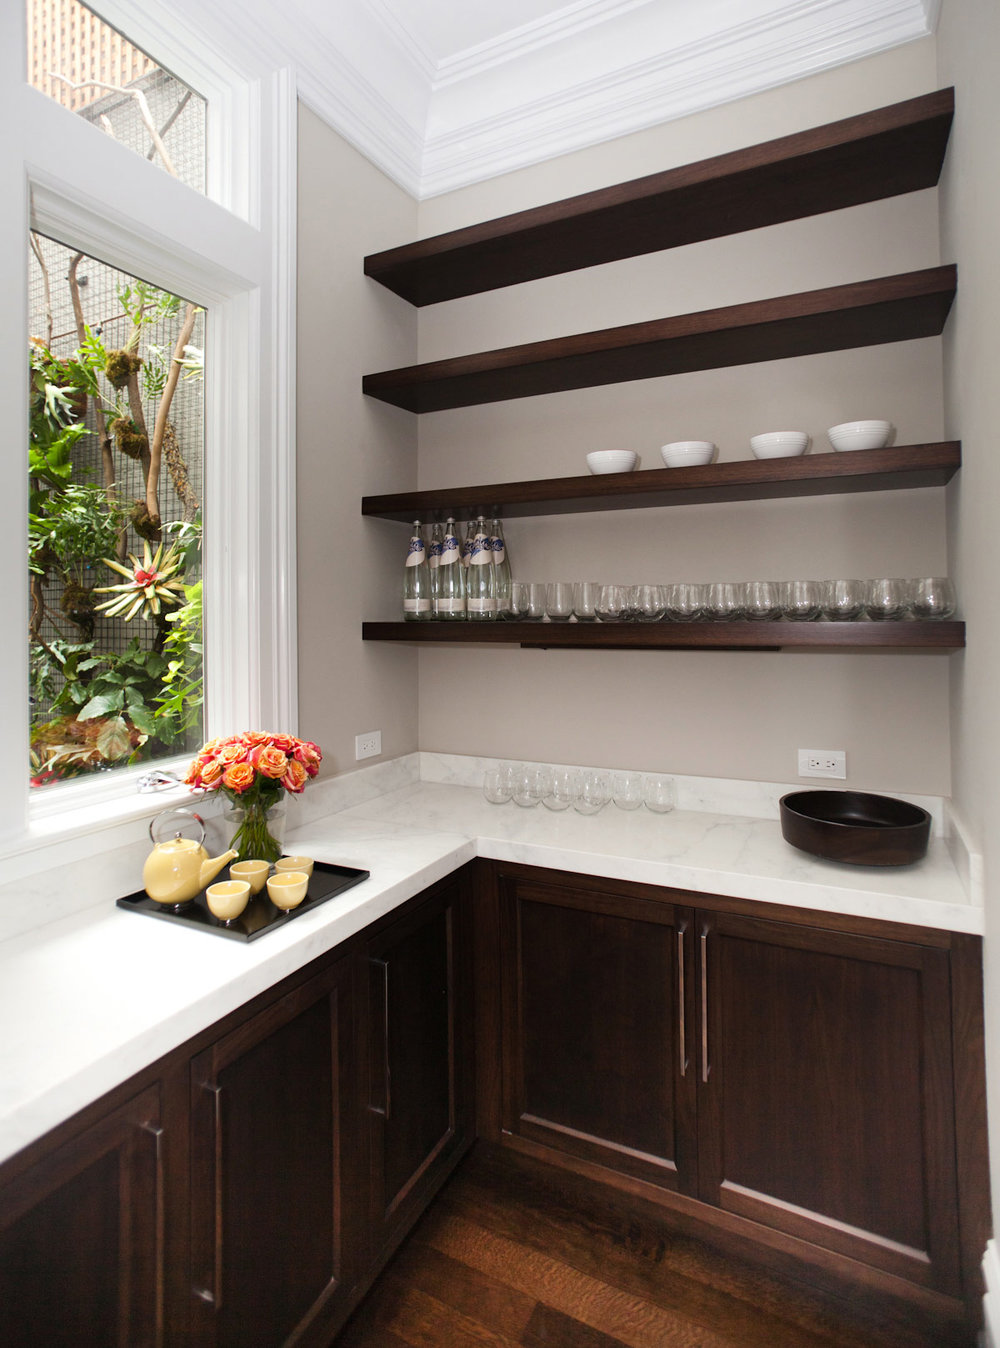 bar, cabinetry, door pulls, marble counters, garden wall, hanging plant wall, floating shelves, hardwood floors